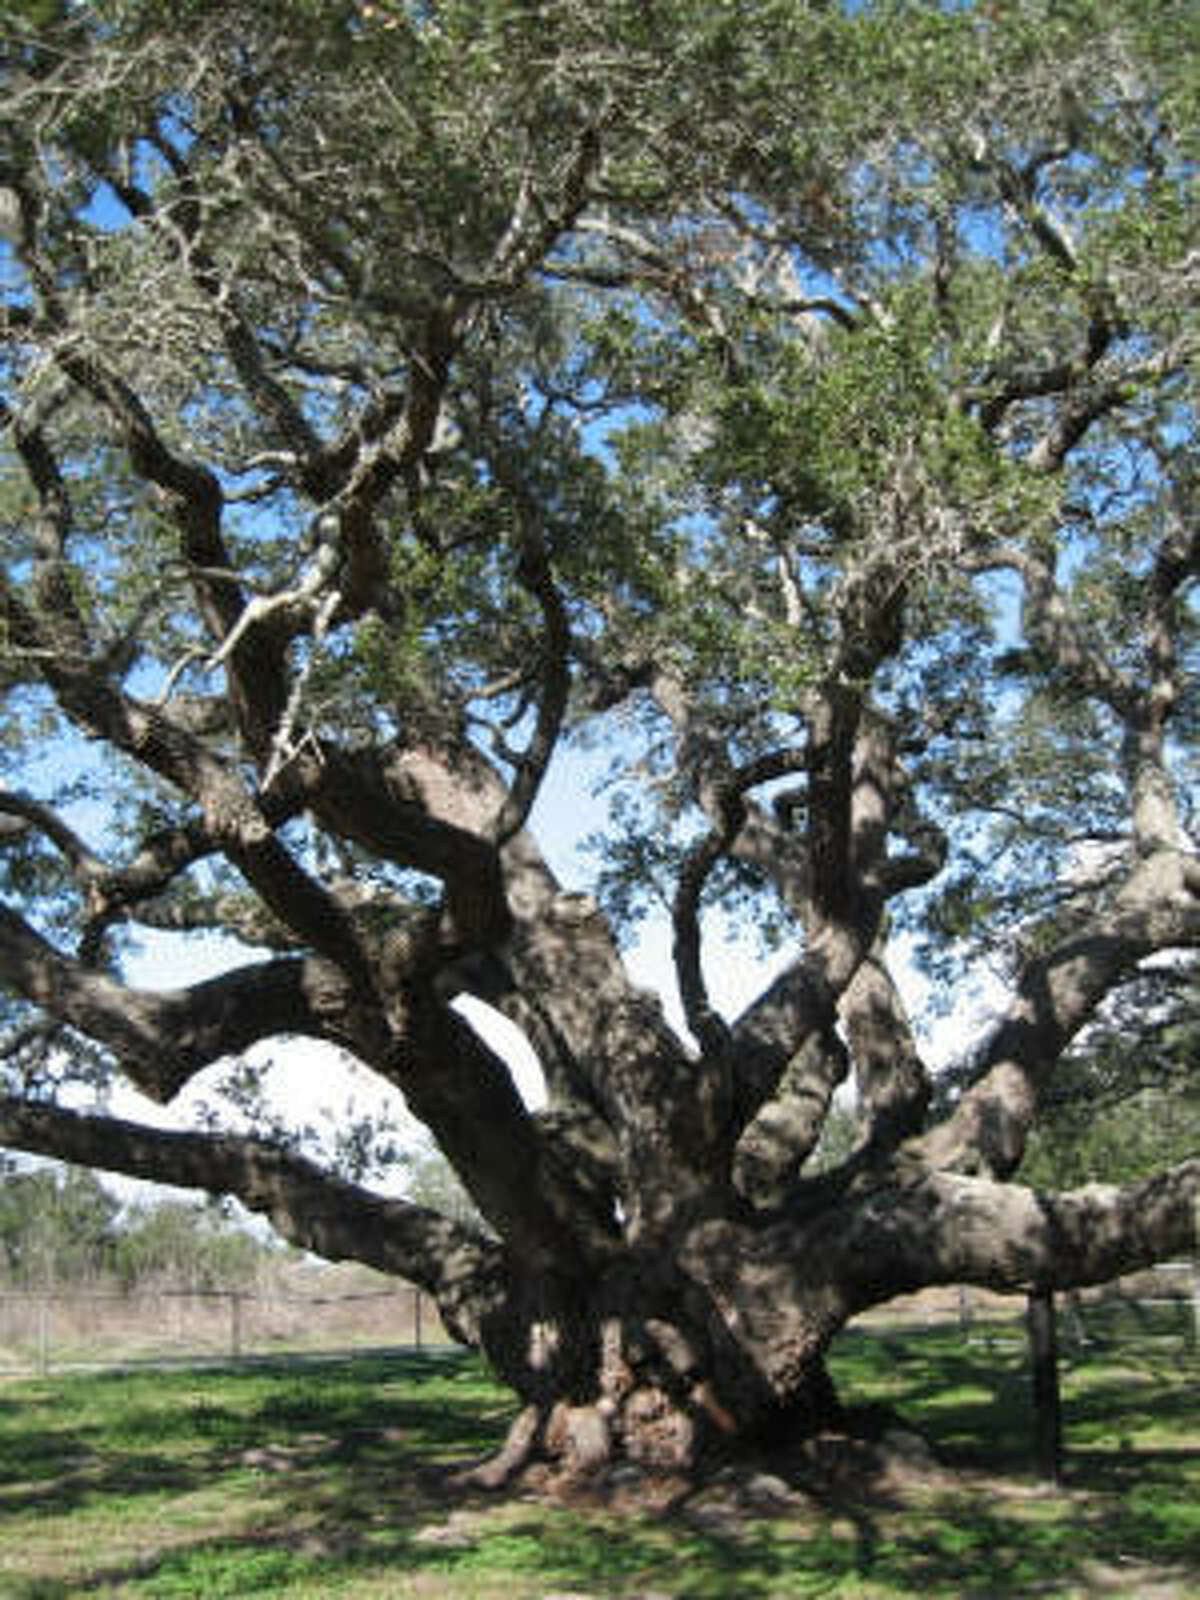 A major draw to Goose Island State Park is the Big Tree, a 44-foot-tall coastal live oak believed to be more than 1,000 years old.